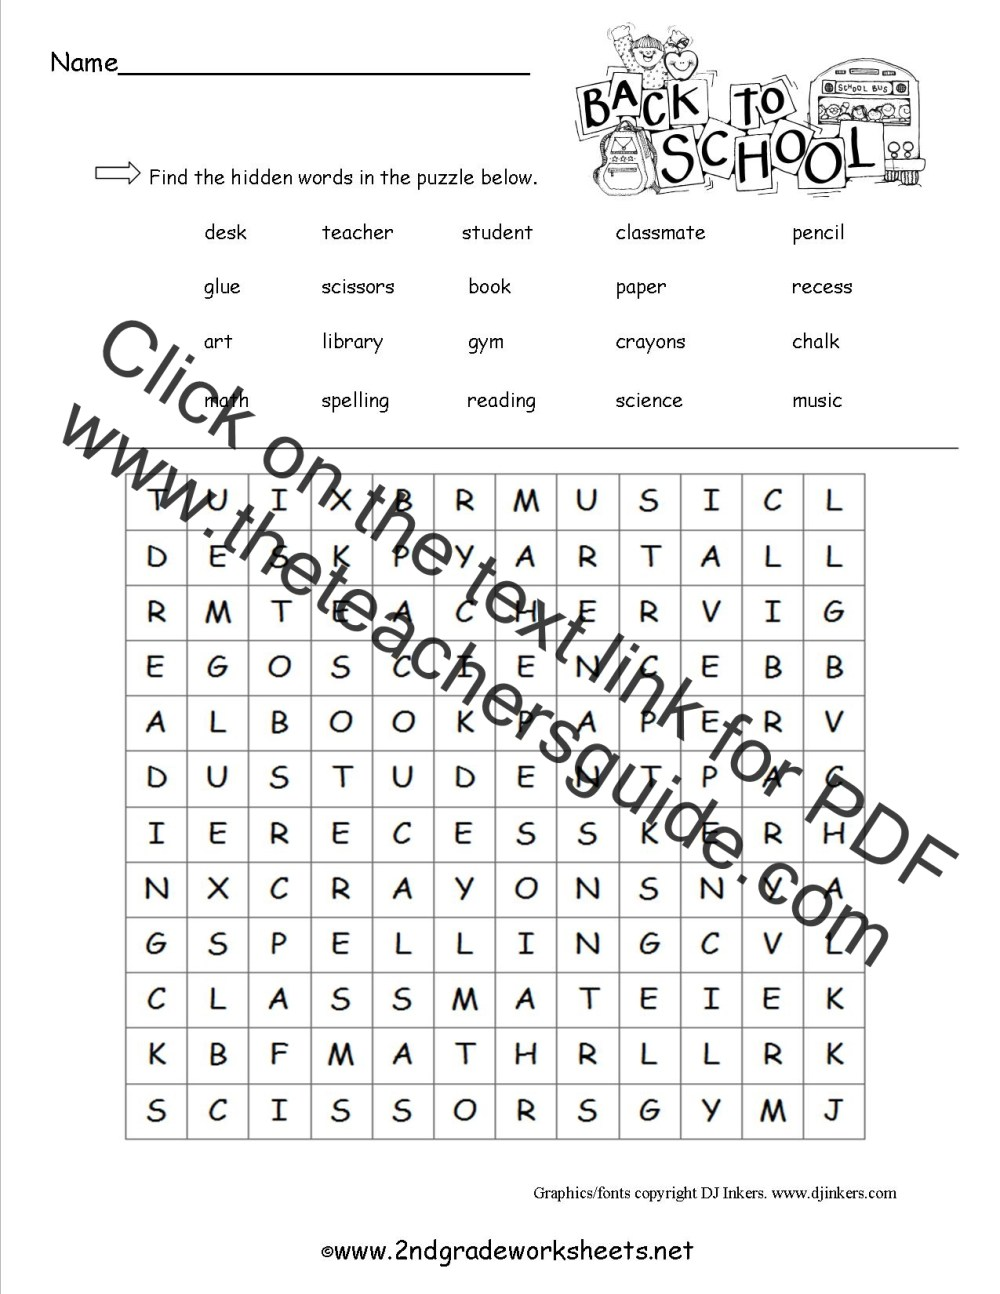 medium resolution of 12 Best 2nd Grade Worksheets Word Search images on Worksheets Ideas